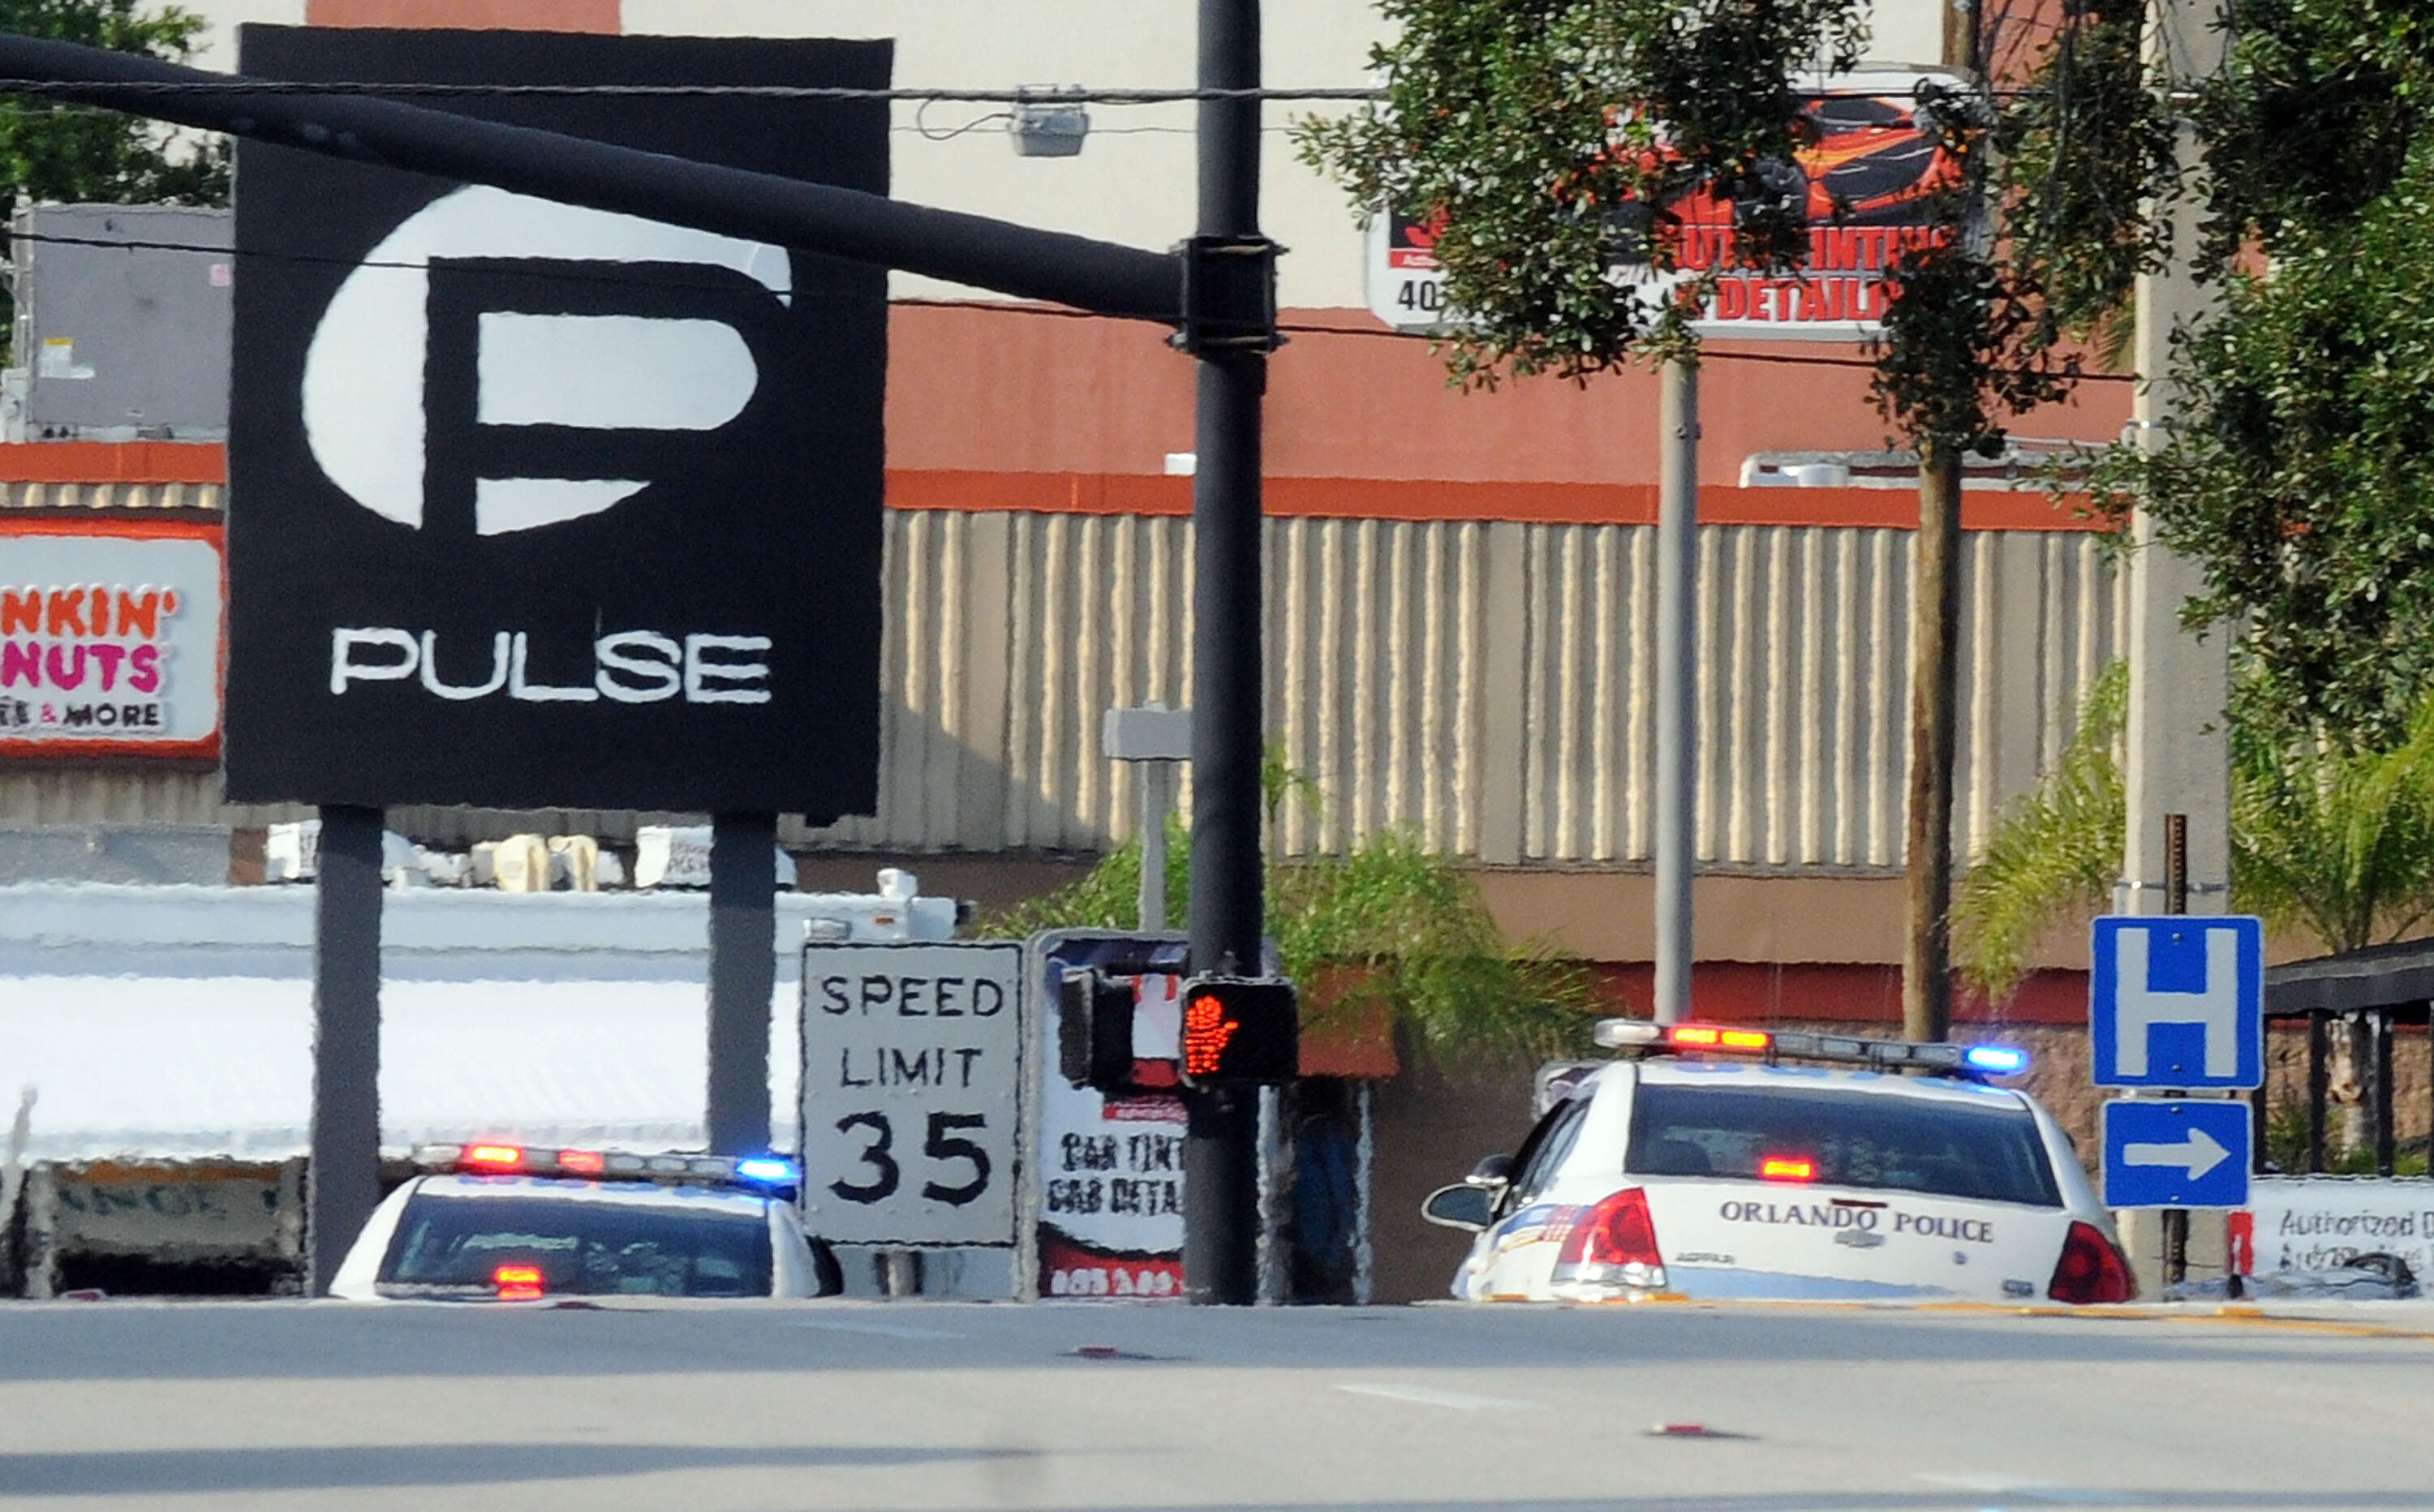 ORLANDO, FL - JUNE 12:  Orlando police officers seen outside of Pulse nightclub after a fatal shooting and hostage situation on June 12, 2016 in Orlando, Florida. The suspect was shot and killed by police after 20 people died and 42 were injured. (Photo b